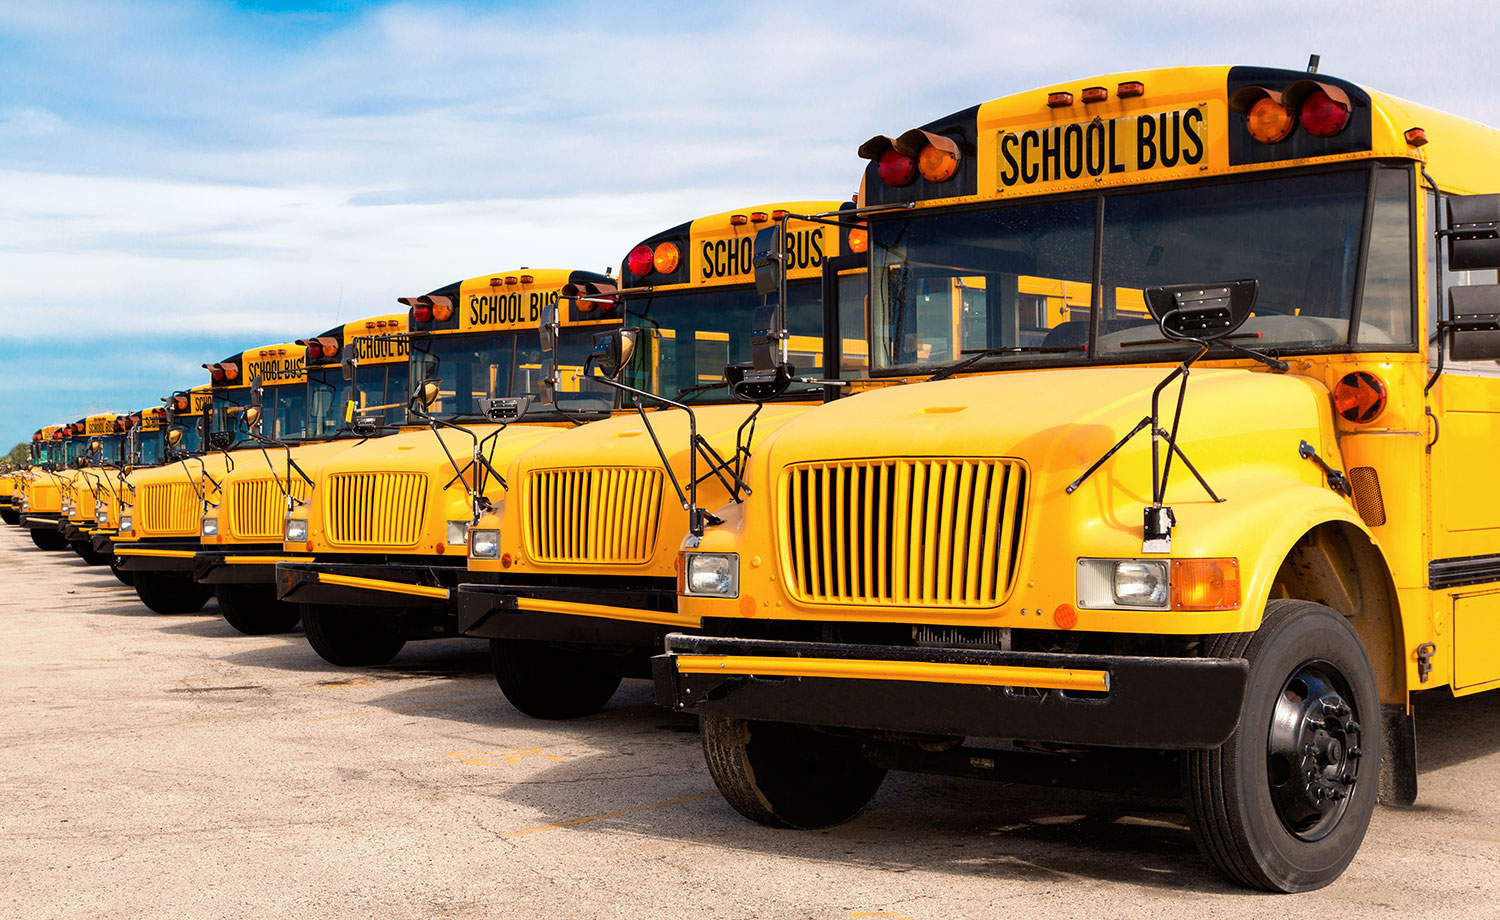 A row of school buses.